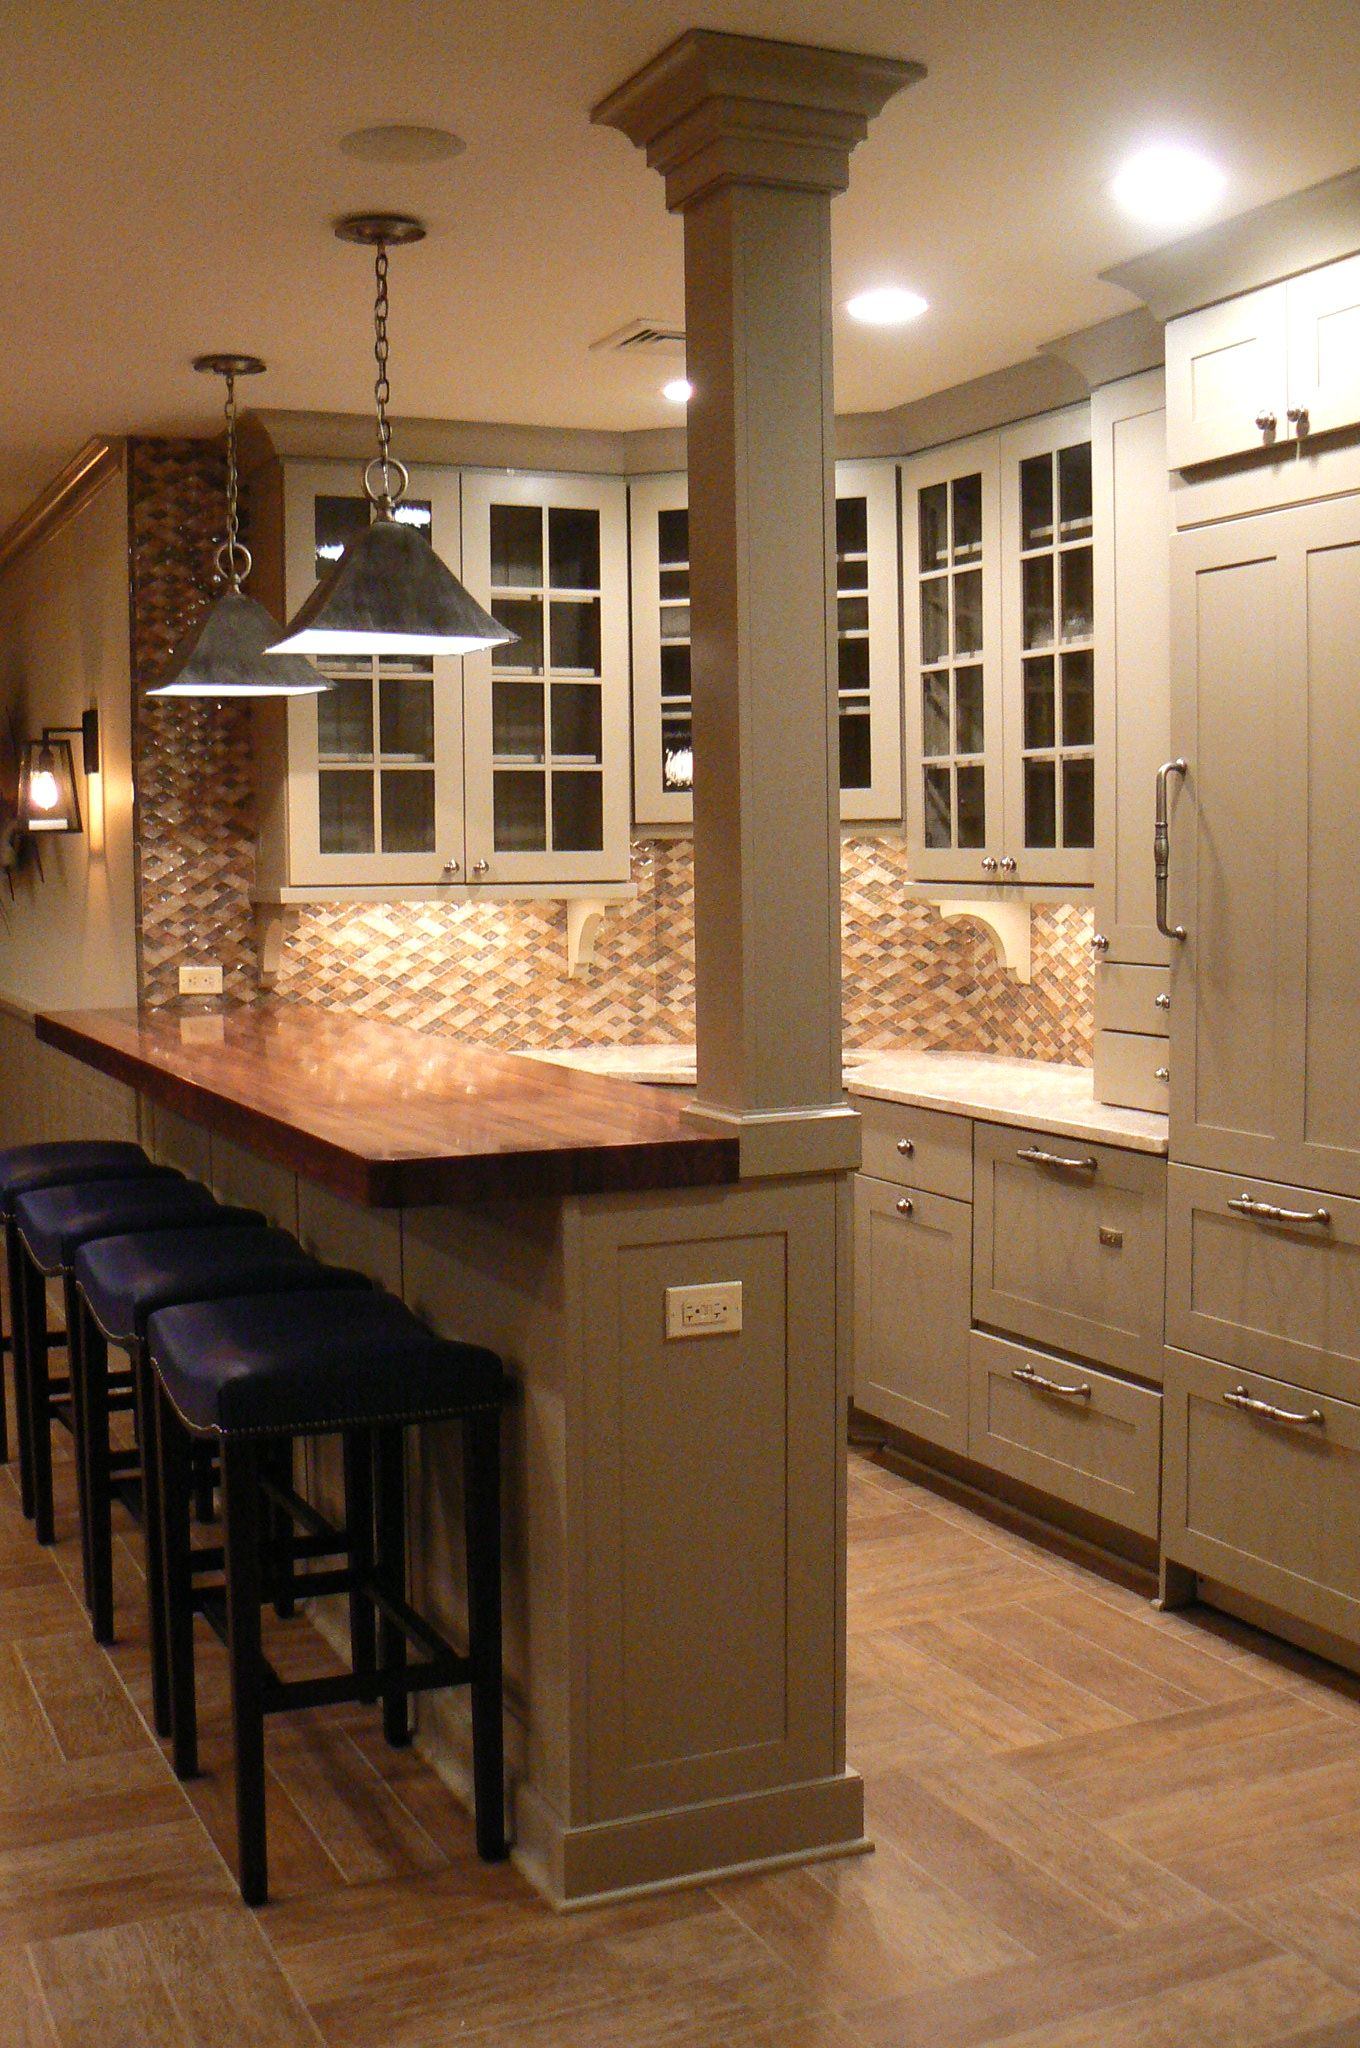 how to build a kitchen island with breakfast bar small appliances basement | for home pinterest